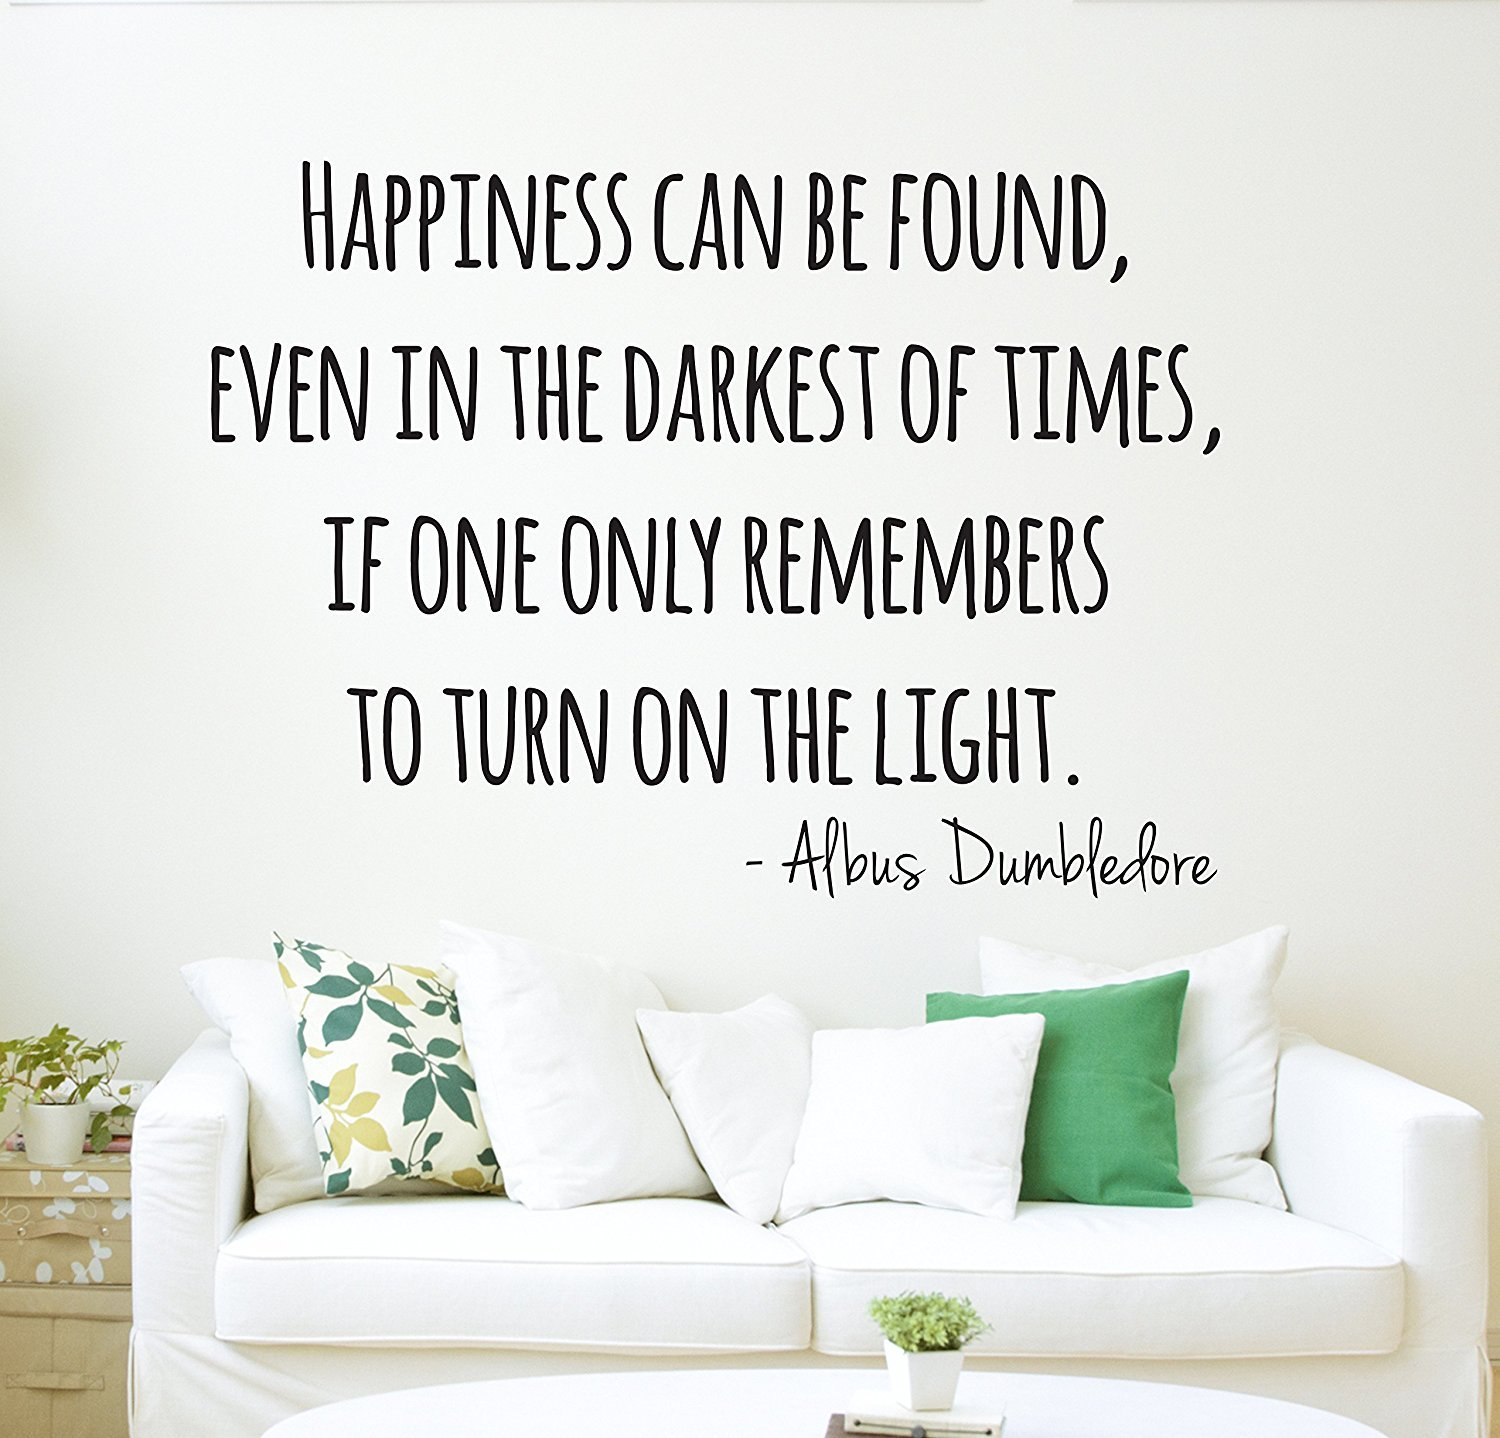 Harry Potter Wall Decal Dumbledore Quote Happiness Wall Decal   Wall Decor    Vinyl Wall Decal     Amazon.com